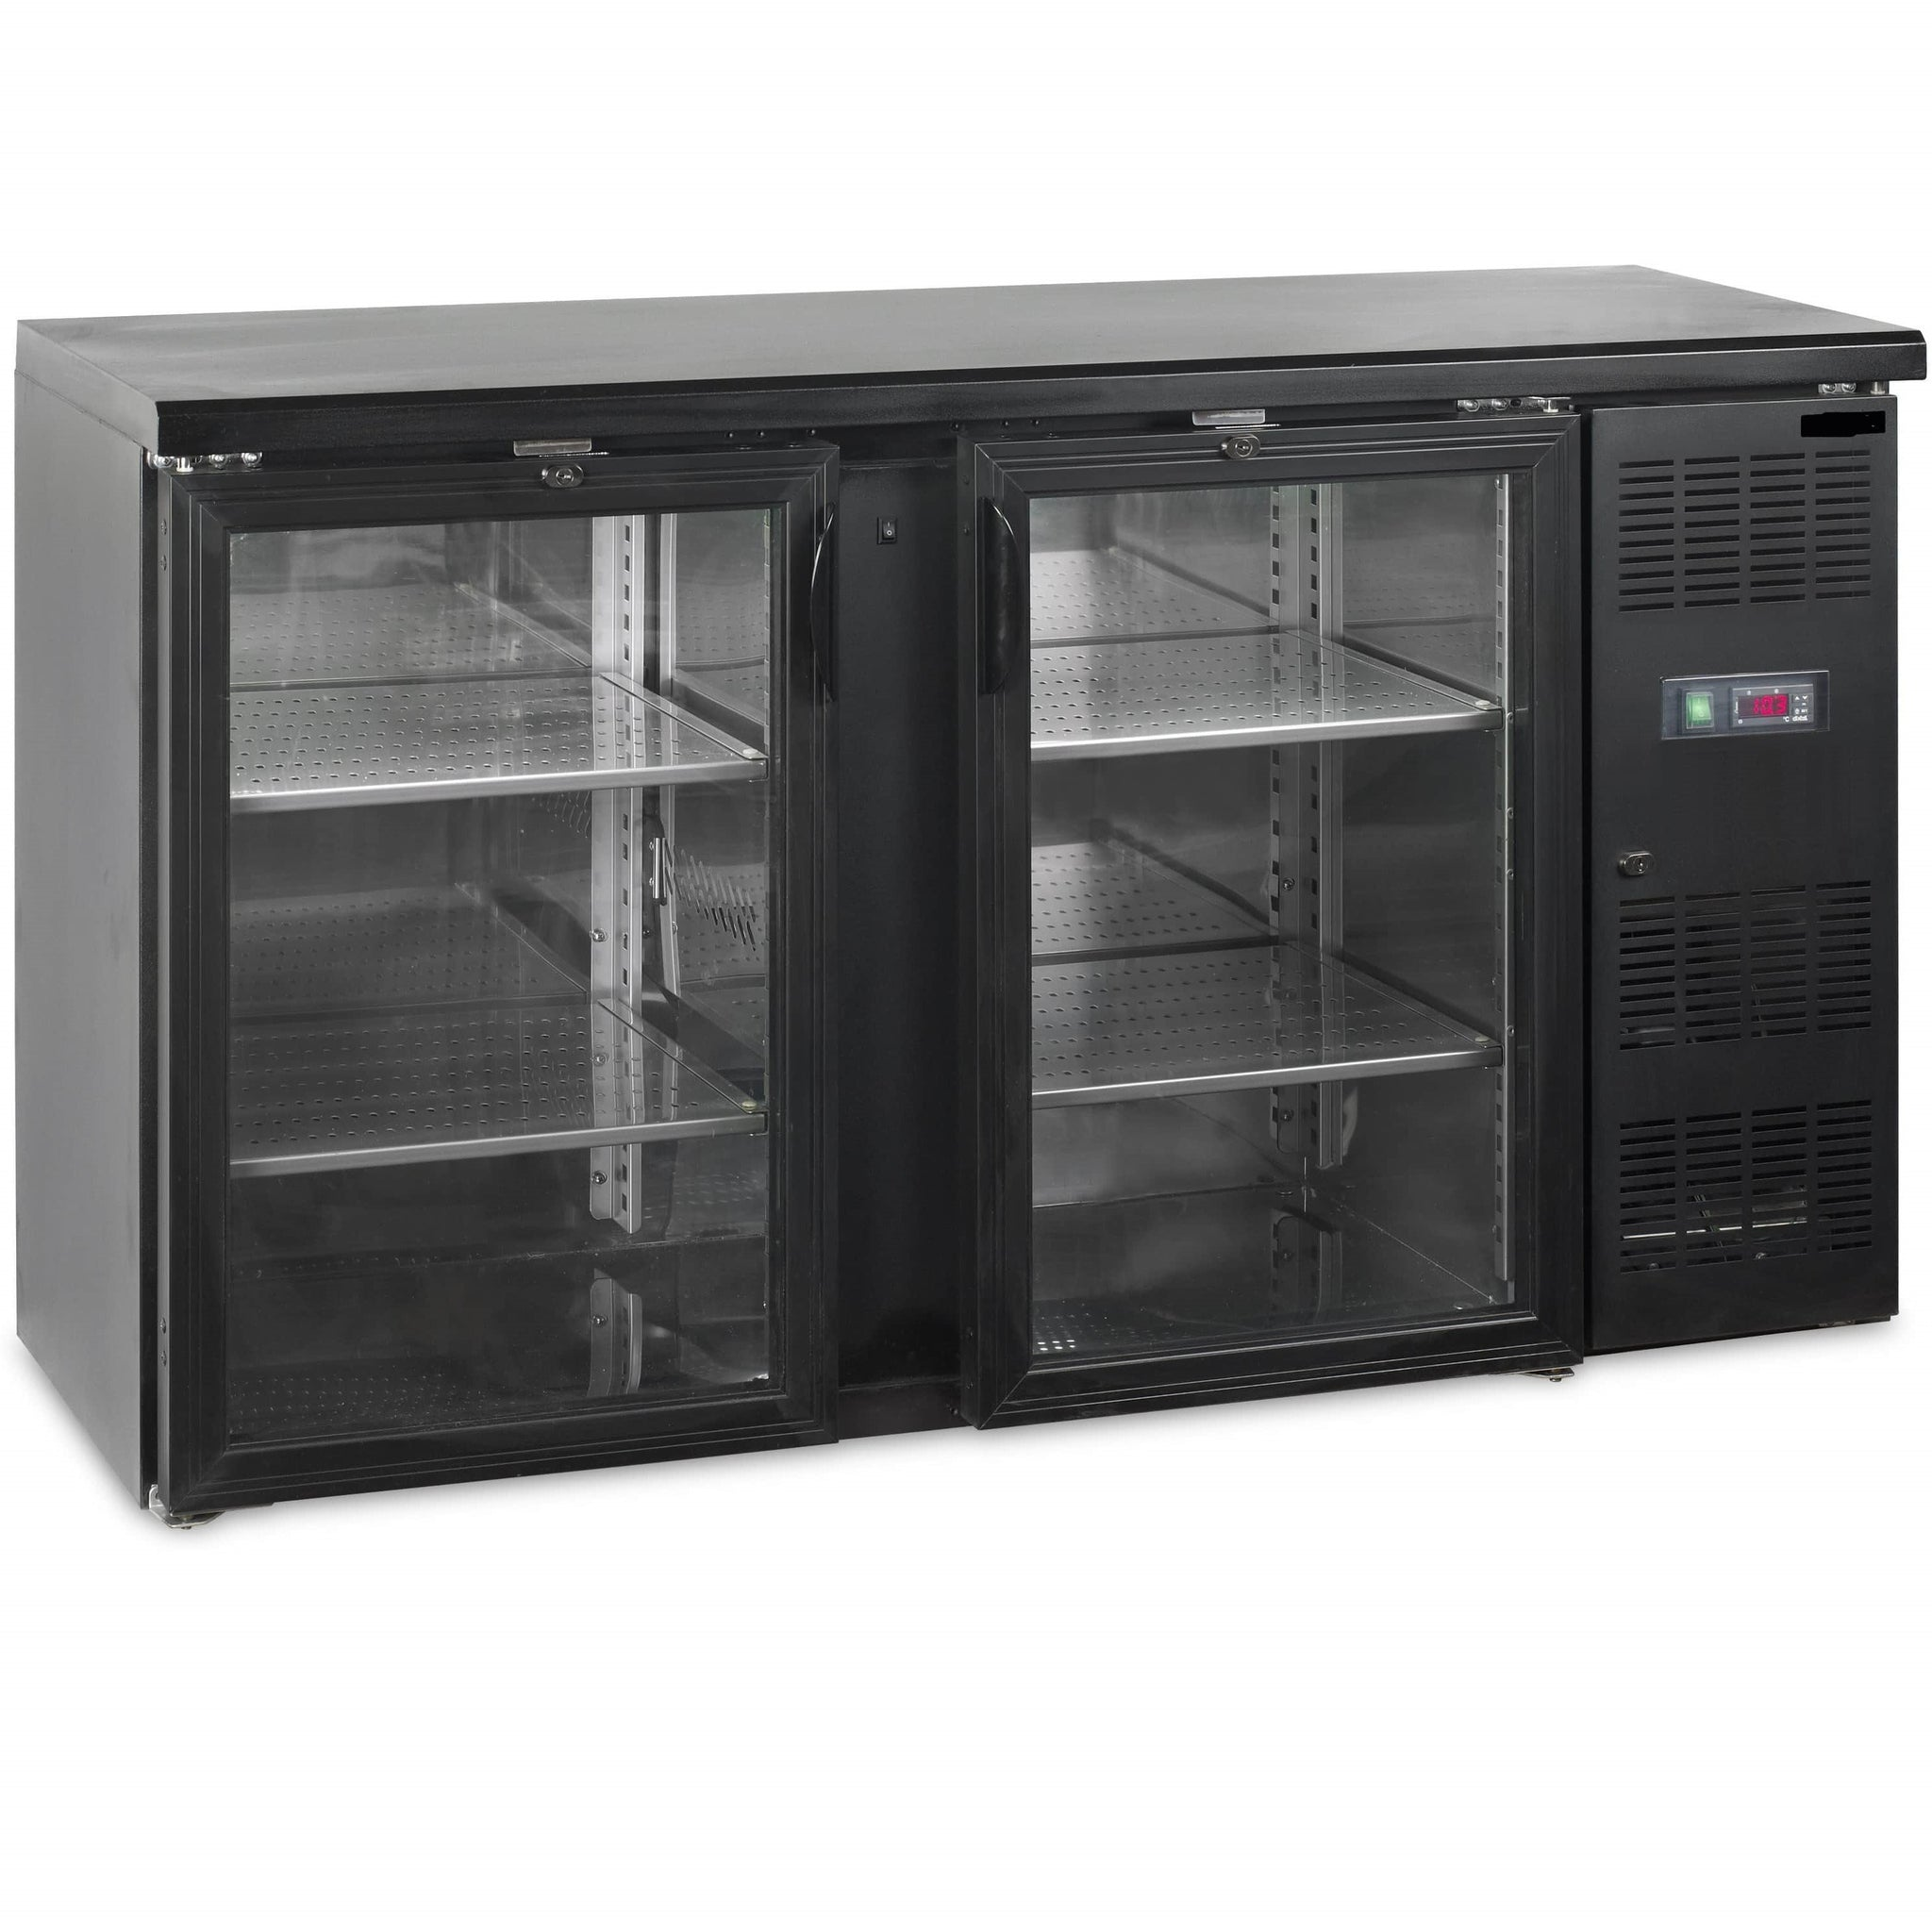 Tefcold backbar dobbelt CBC210G-P heavy duty